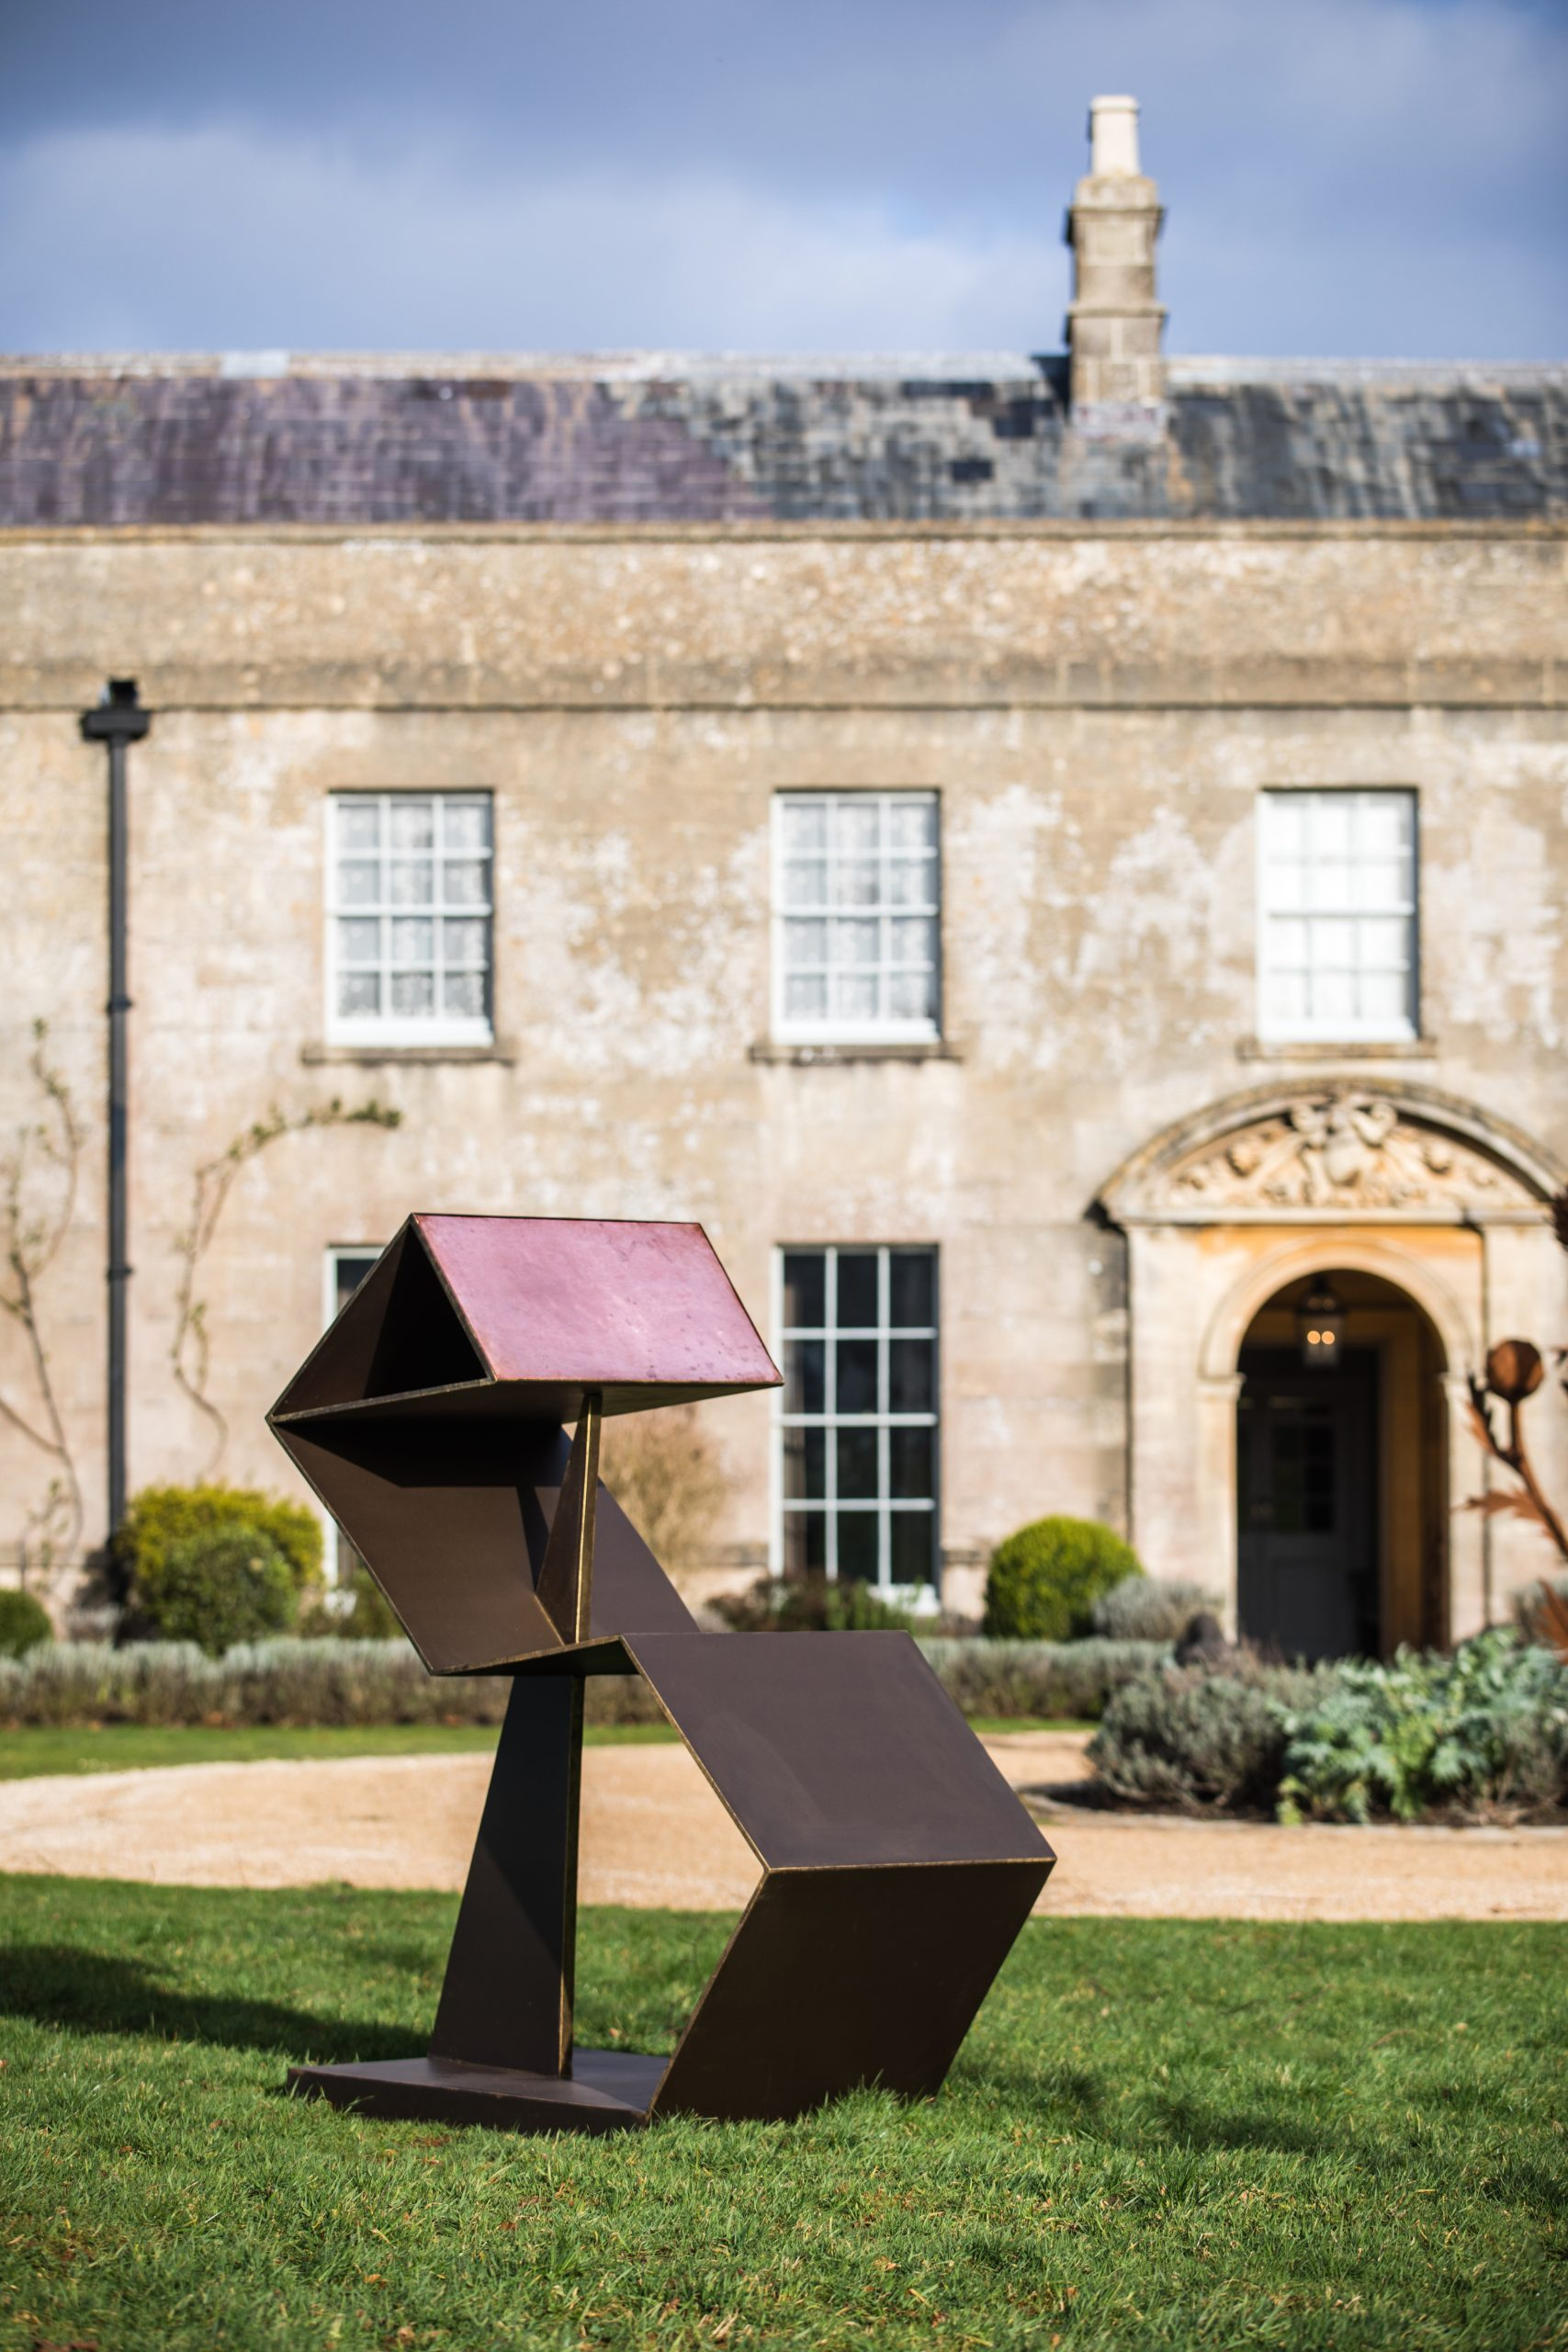 'Centaurus' Commissioned for The Pig Hotel, Bath